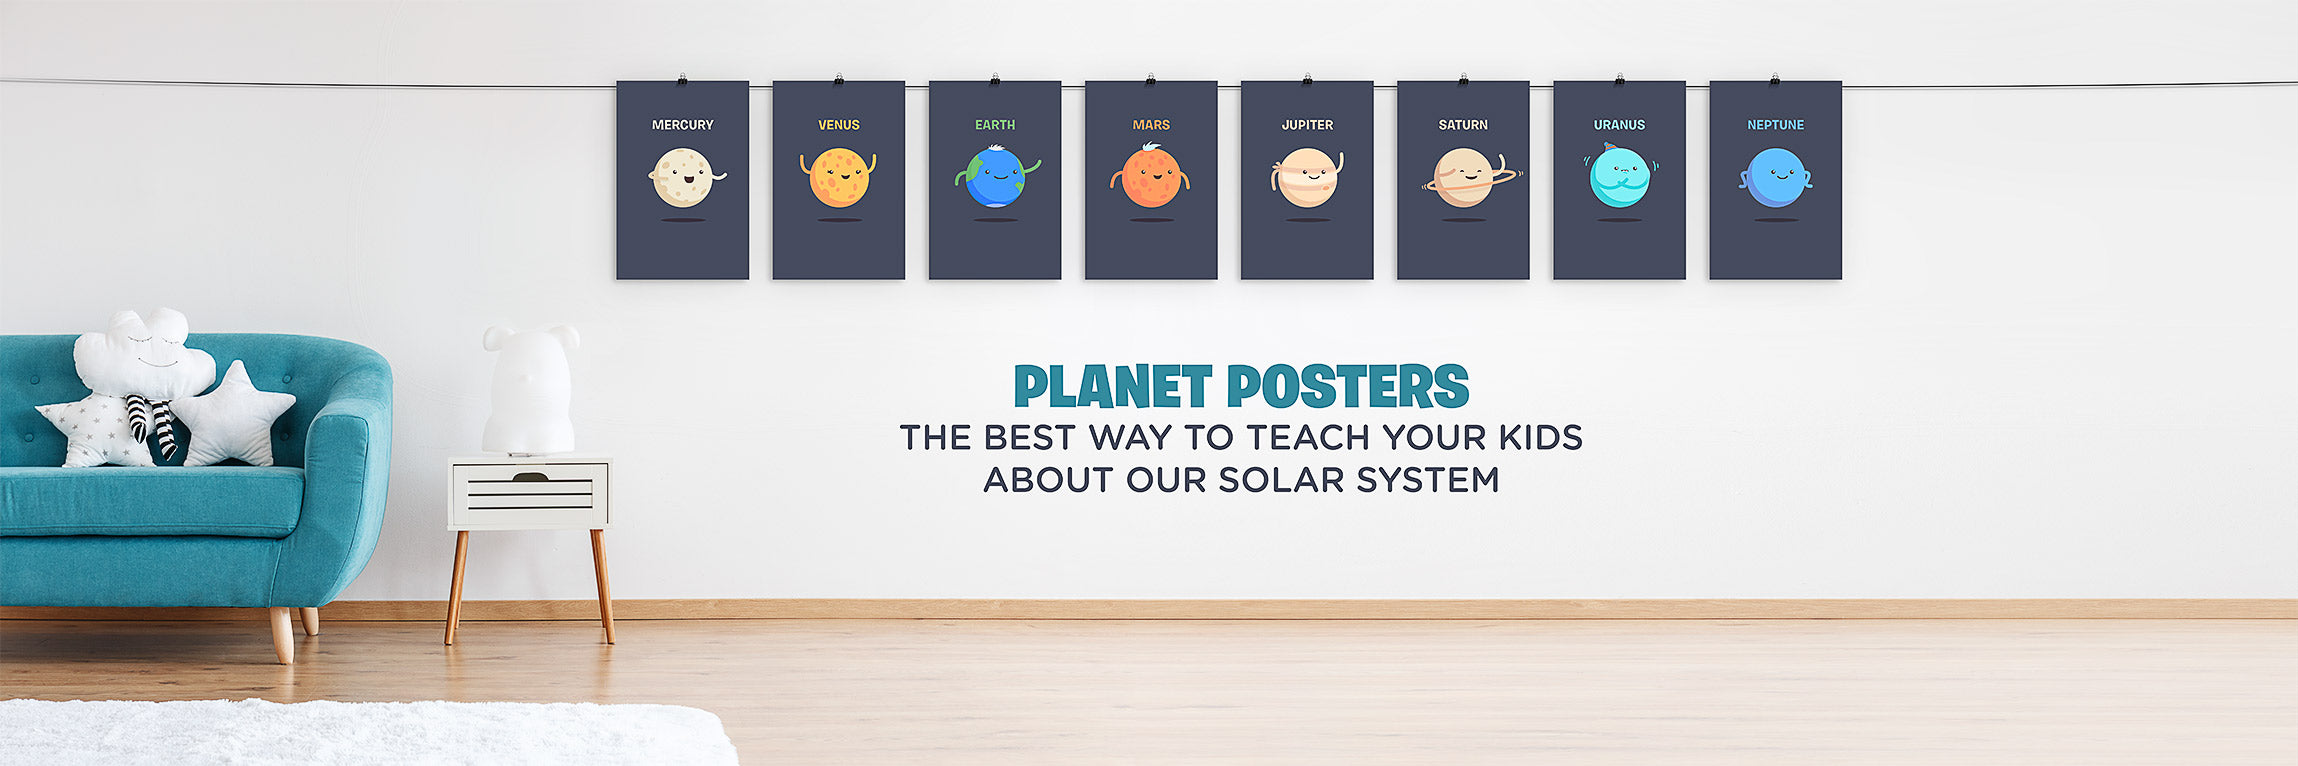 Planet Posters for Childrens bedroom